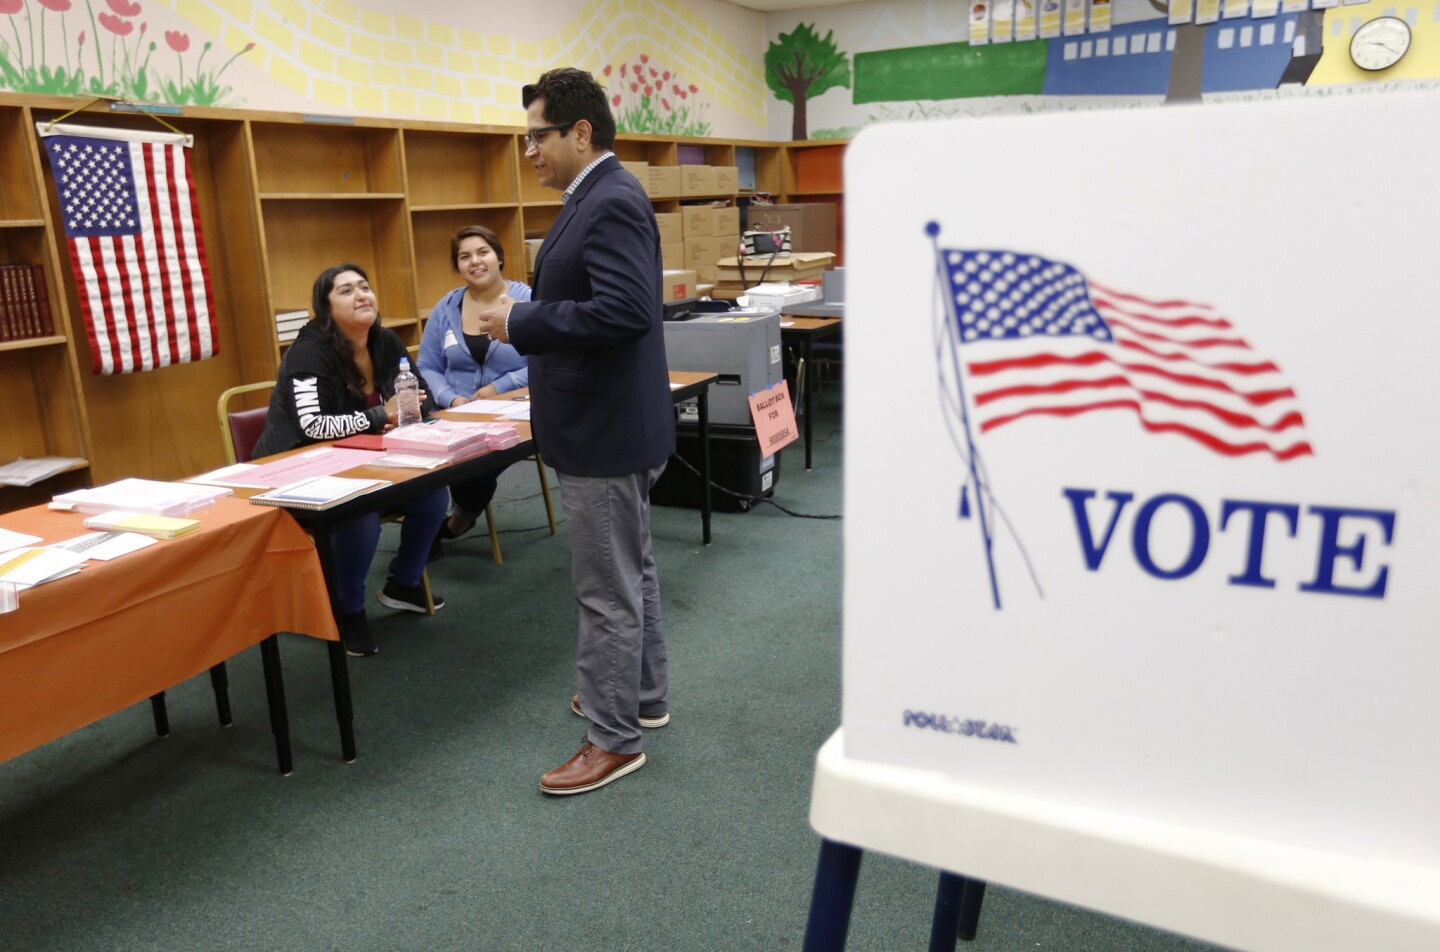 LOS ANGELES, CA - JUNE 6, 2017 -- Jimmy Gomez thanks poll volunteers at Sheridan Street School in Boyle Heights as he is walking the precinct Tuesday morning June 6, 2017 in a last effort to get out the vote as he runs for the 34th congressional district special election to replace the seat vacated by California Attorney General Xavier Becerra. Tuesday's election is between Jimmy Gomez and Robert Ahn for the 34th congressional district of Los Angeles. (Al Seib / Los Angeles Times)